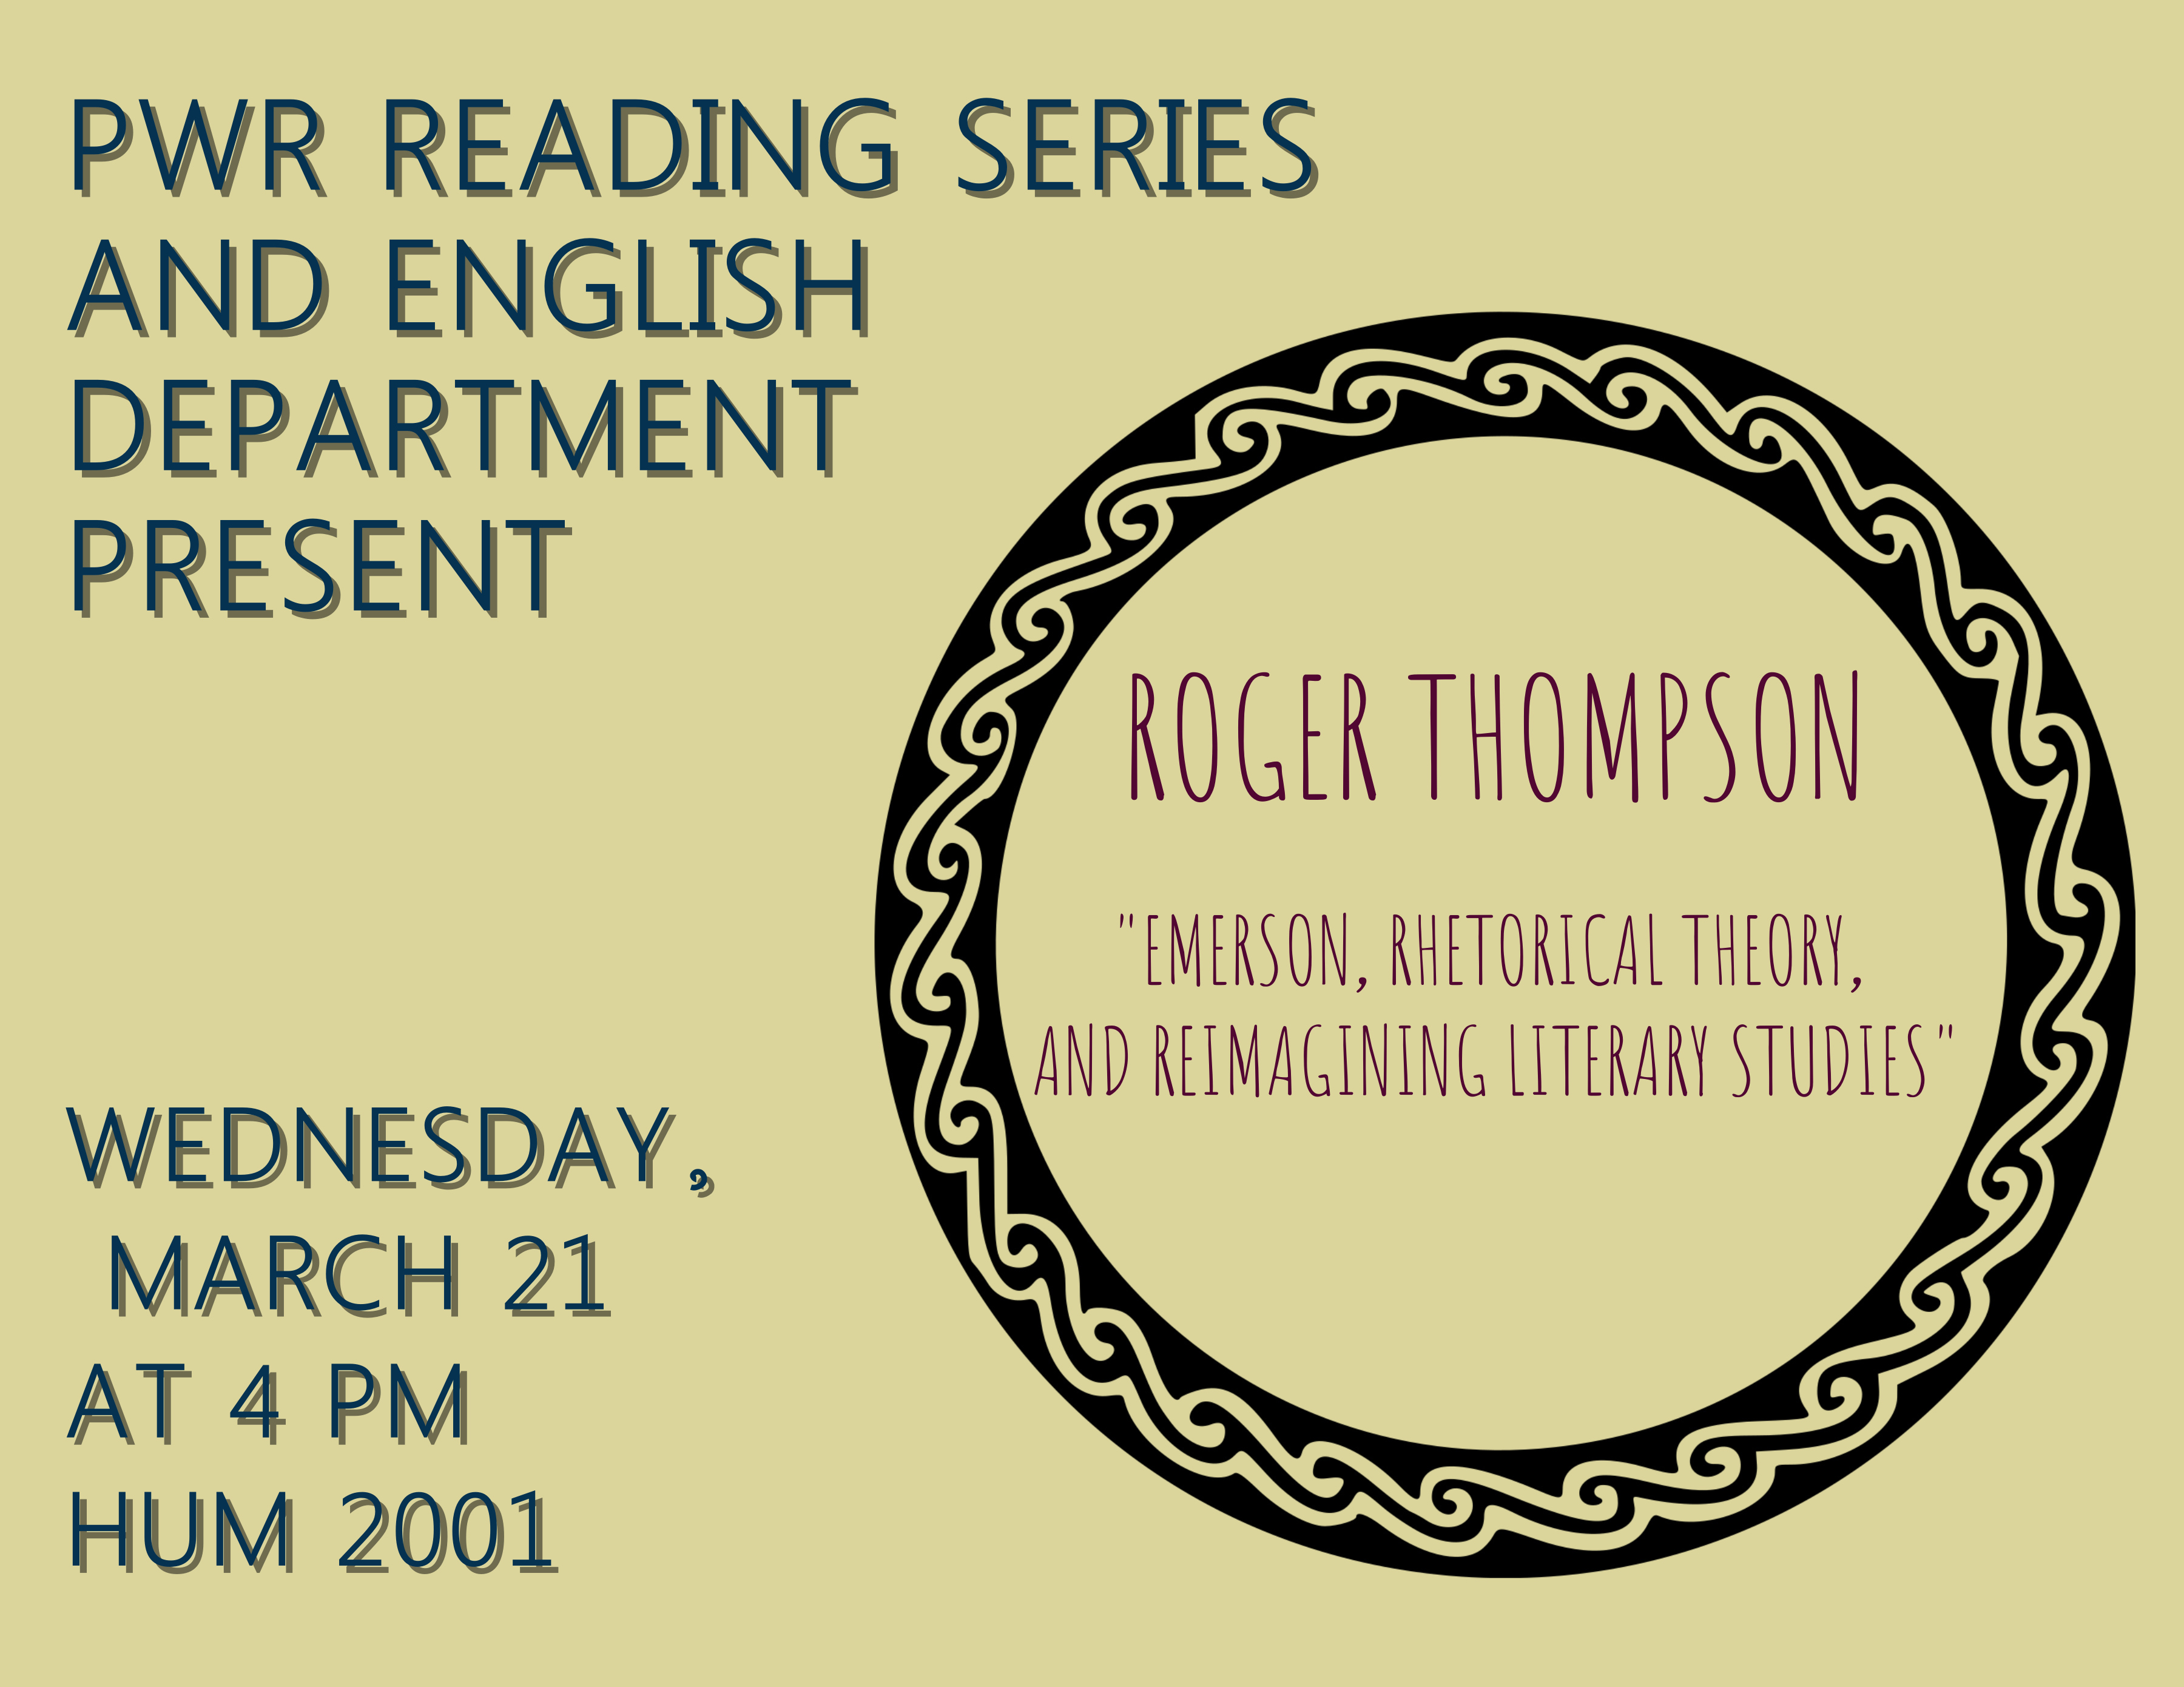 Roger Thompson Event March 21st at 4PM